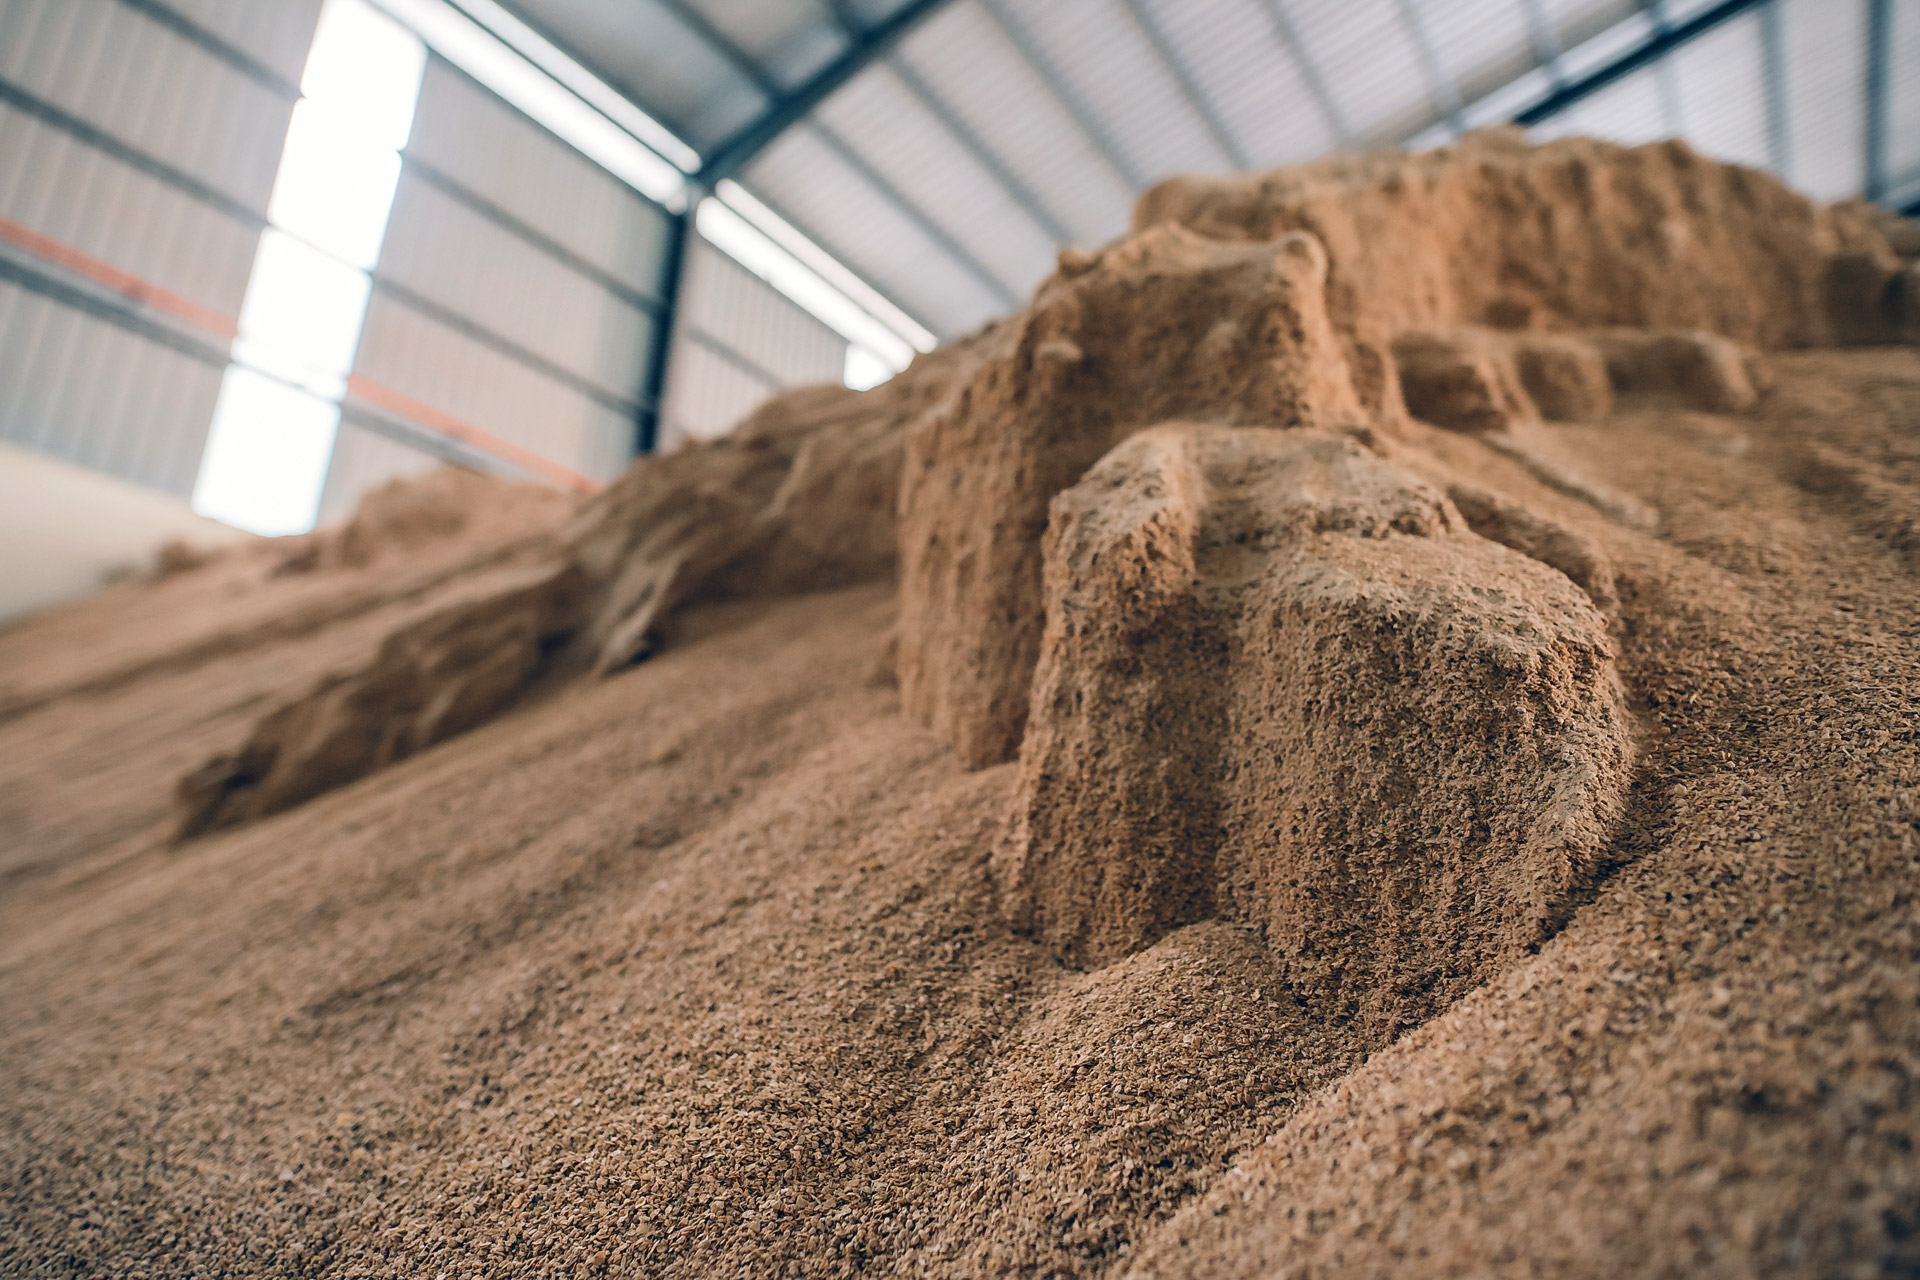 Powdered product in storage building